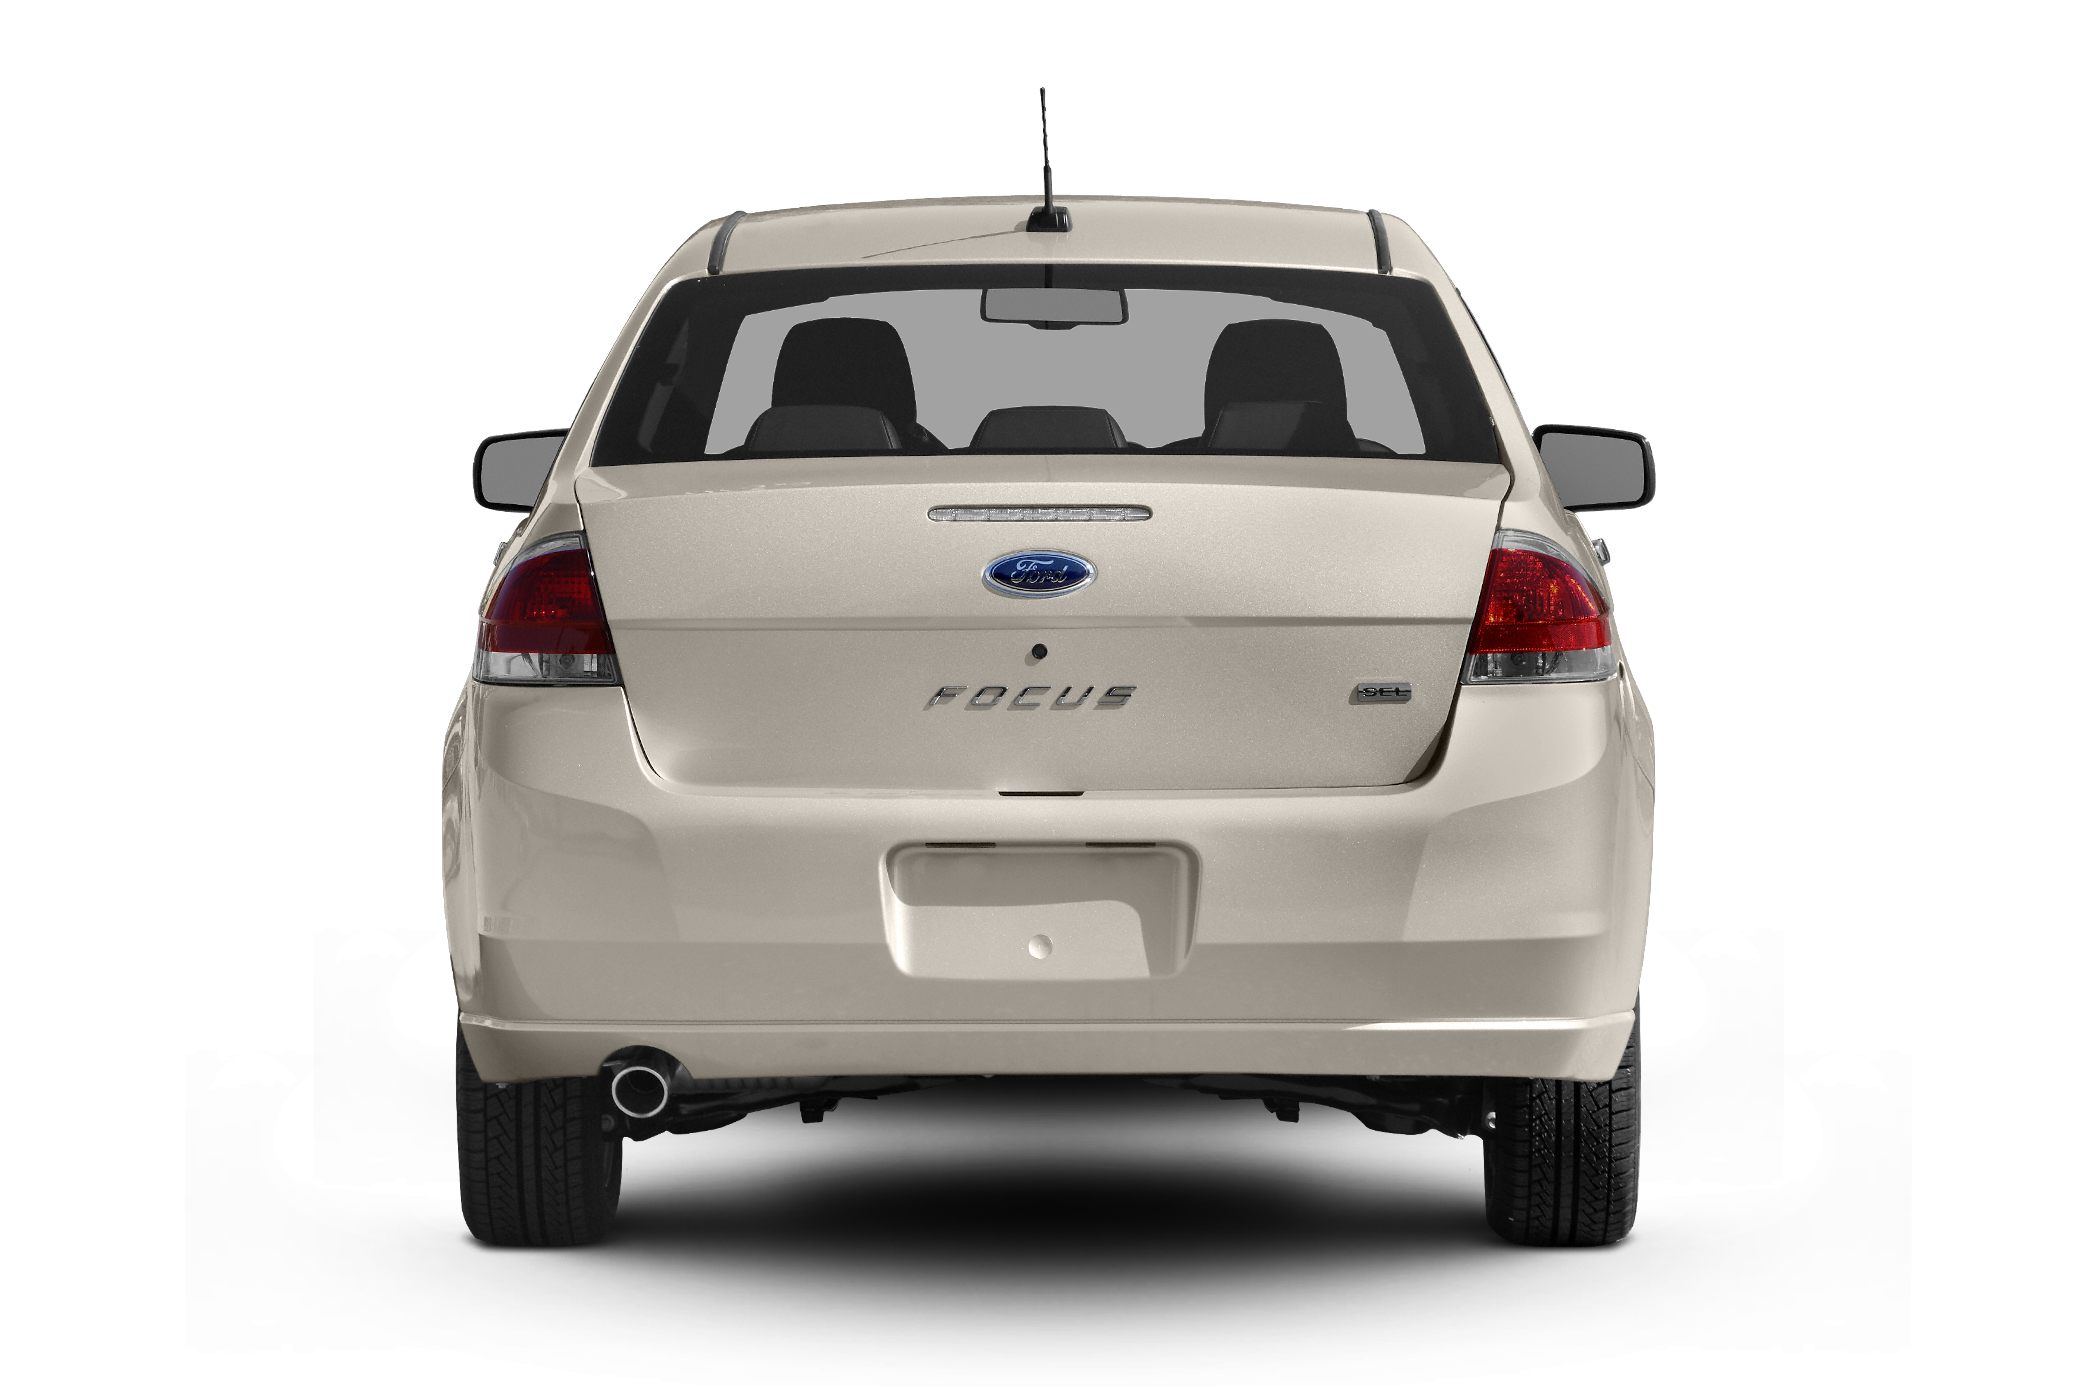 medium resolution of used 2010 ford focus for sale in buckner near louisville ky vin 1fahp3fn5aw176811